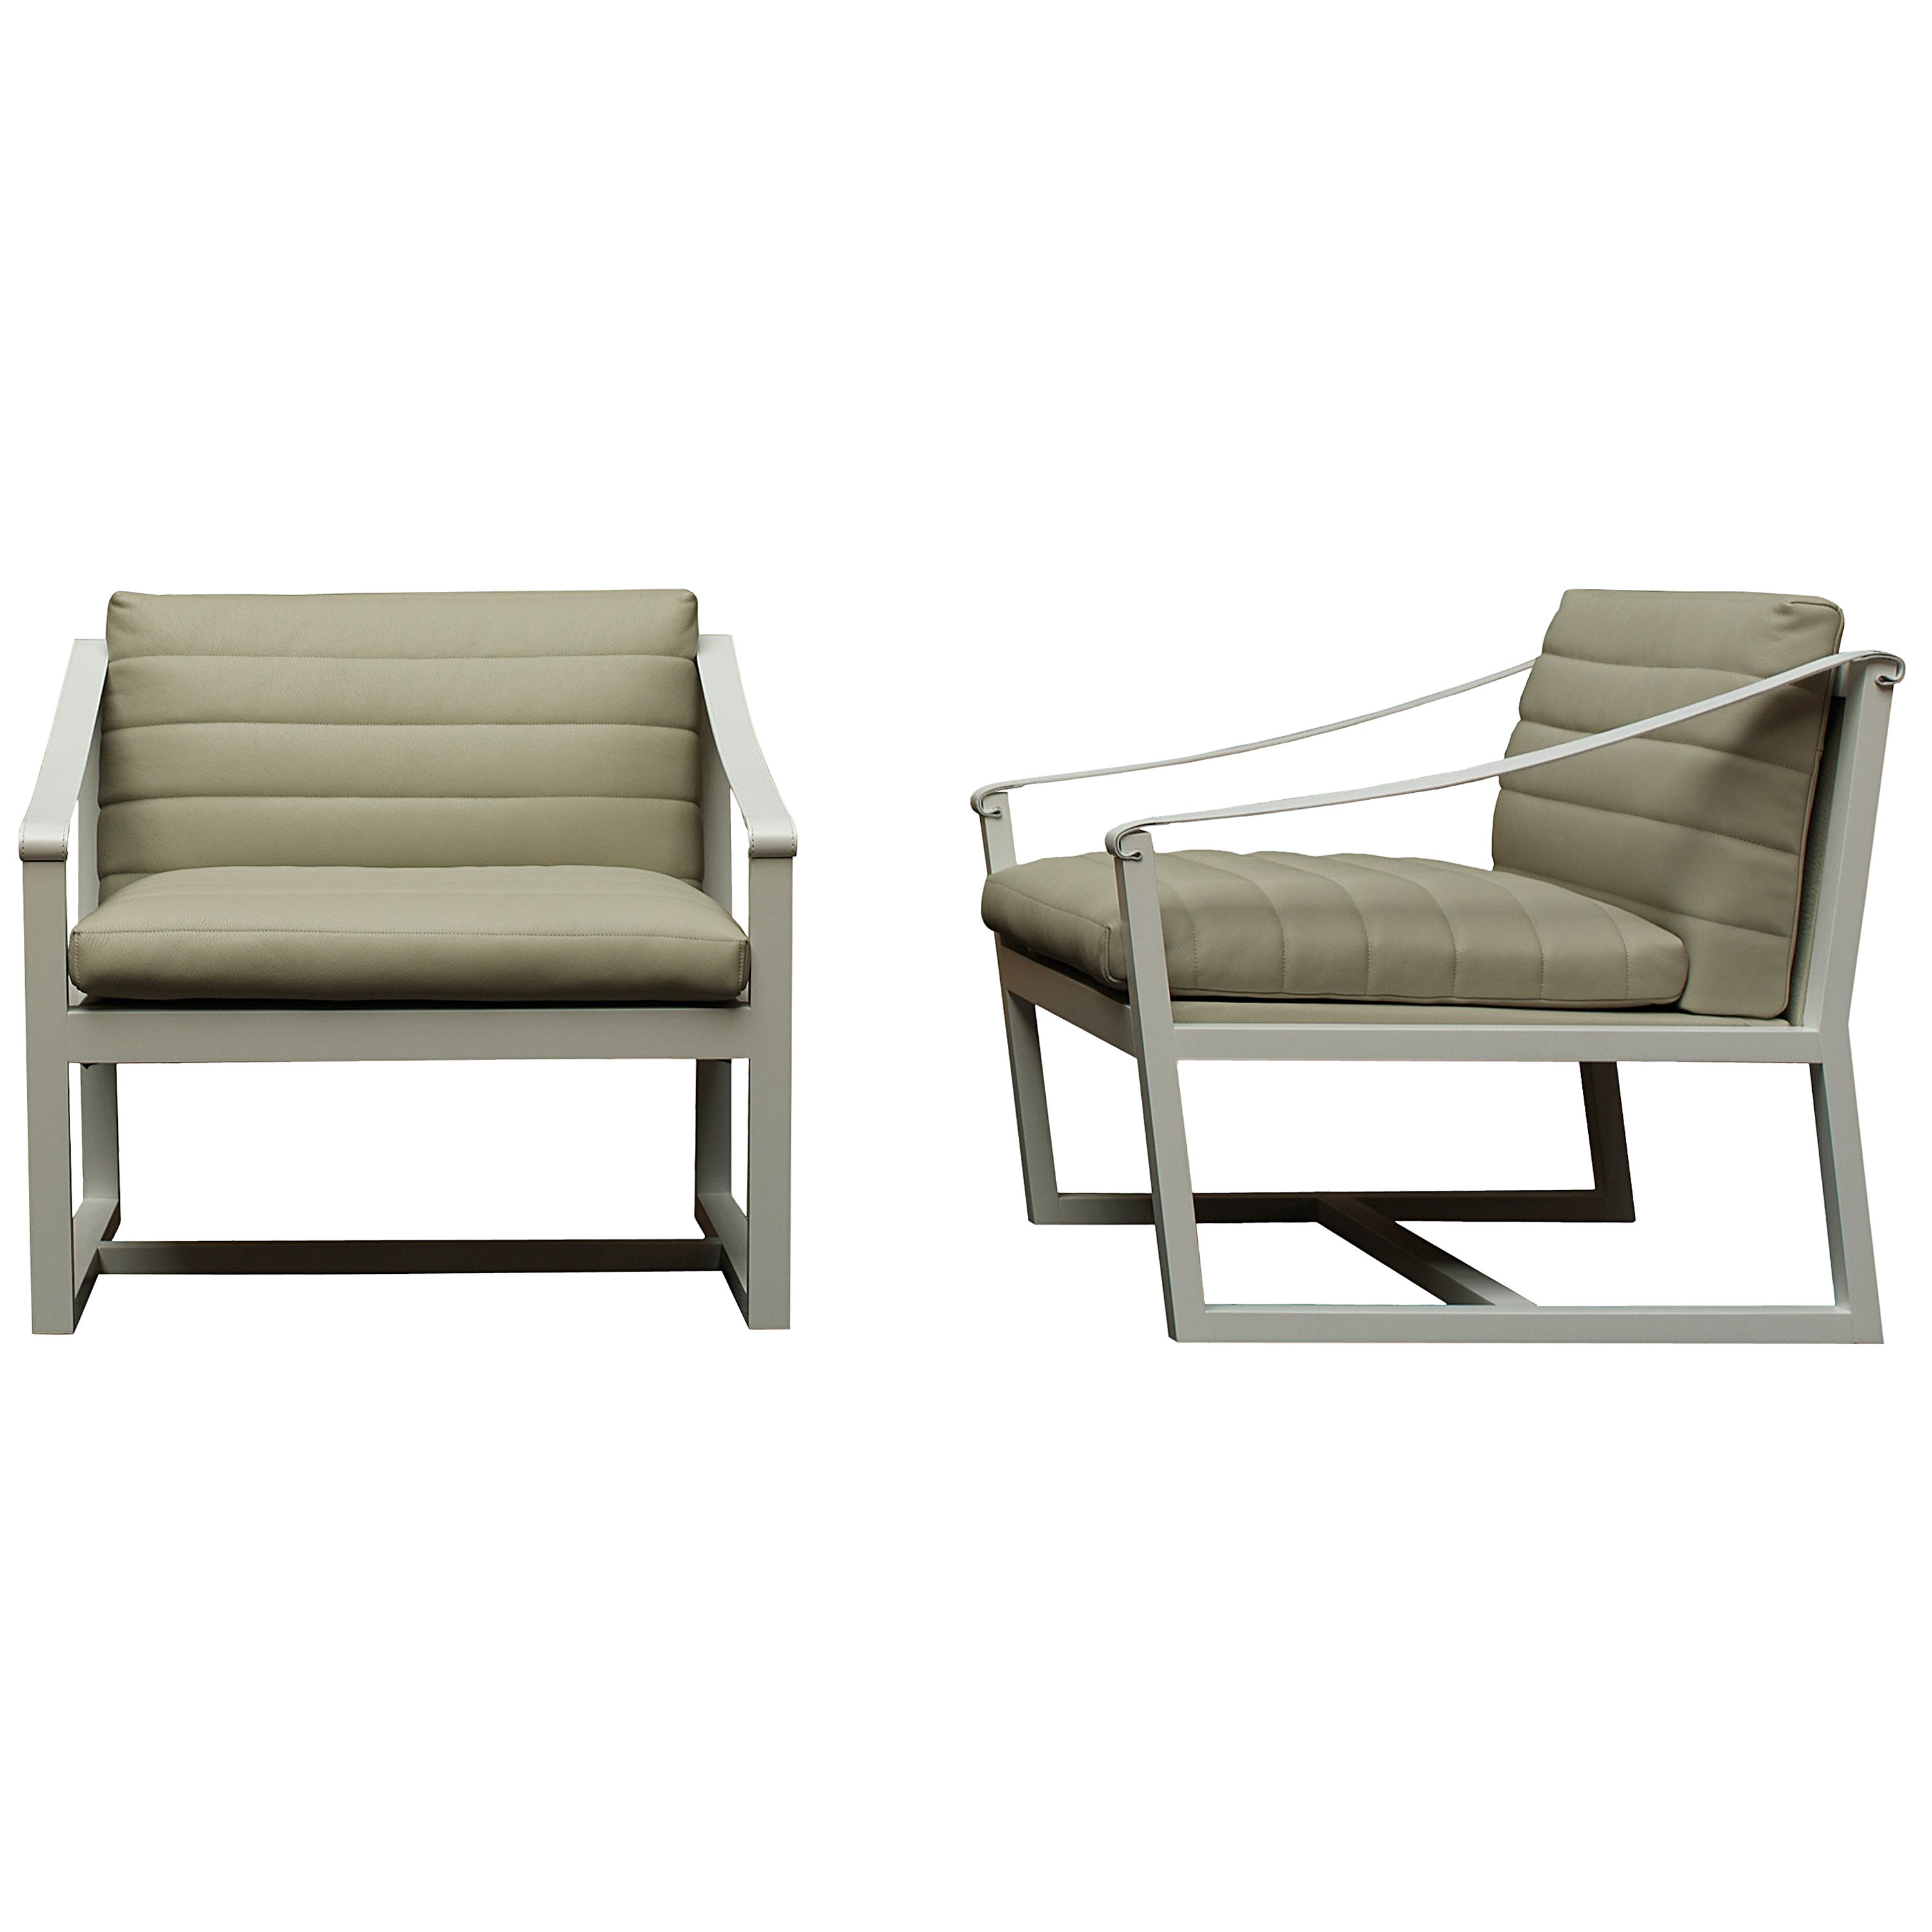 Nube Italia Softwood Armchair in Taupe Leather by Marco Corti